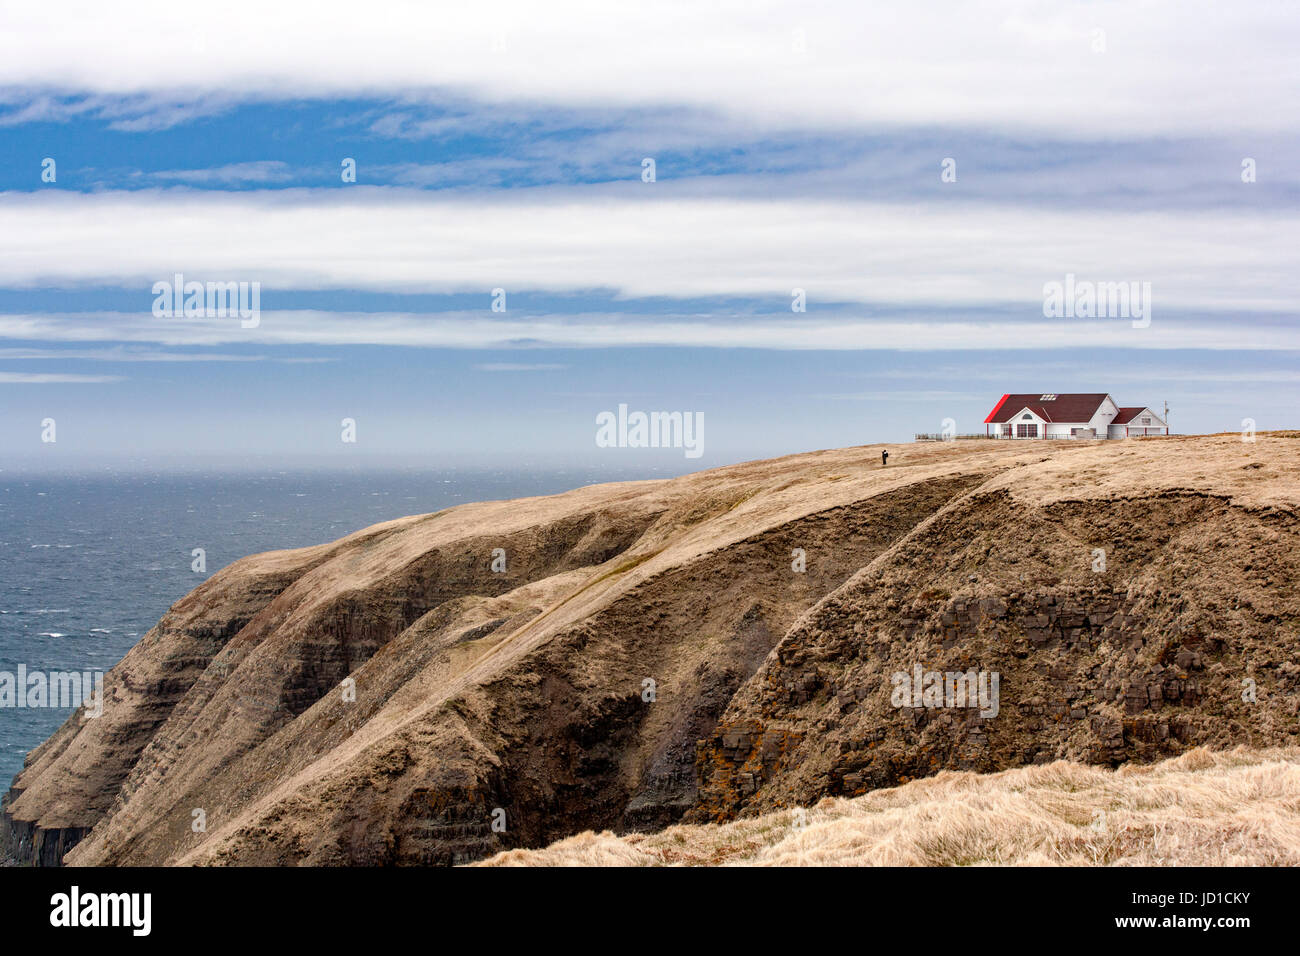 View of Interpretive Centre at Cape St. Mary's Ecological Reserve, Cape St. Mary's, Avalon Peninsula, Newfoundland, - Stock Image